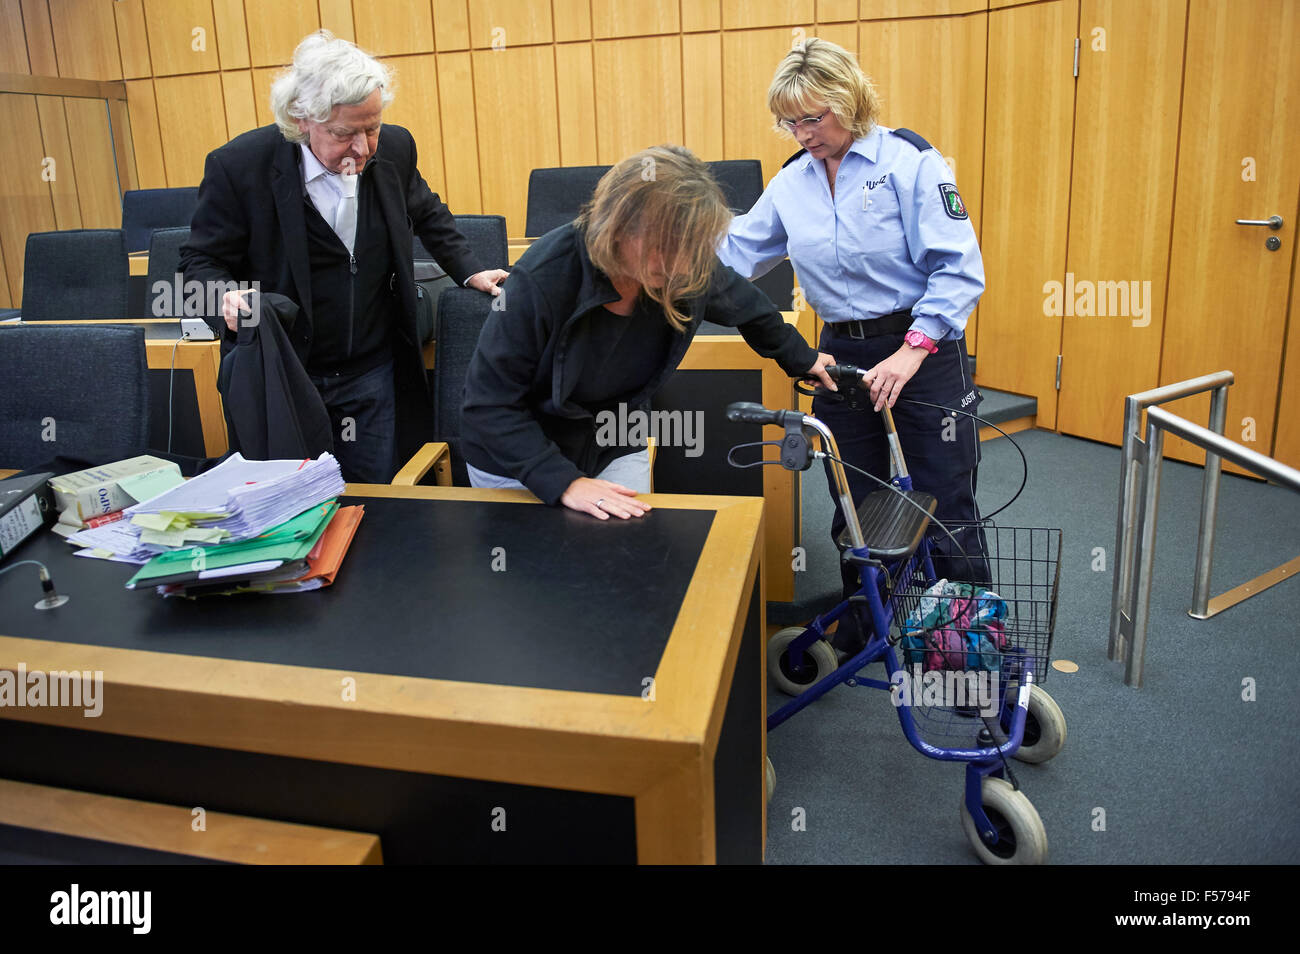 Muenster, Germany. 29th Oct, 2015. The defendant Katja R takes a seat in the dock with support from a walker and - Stock Image